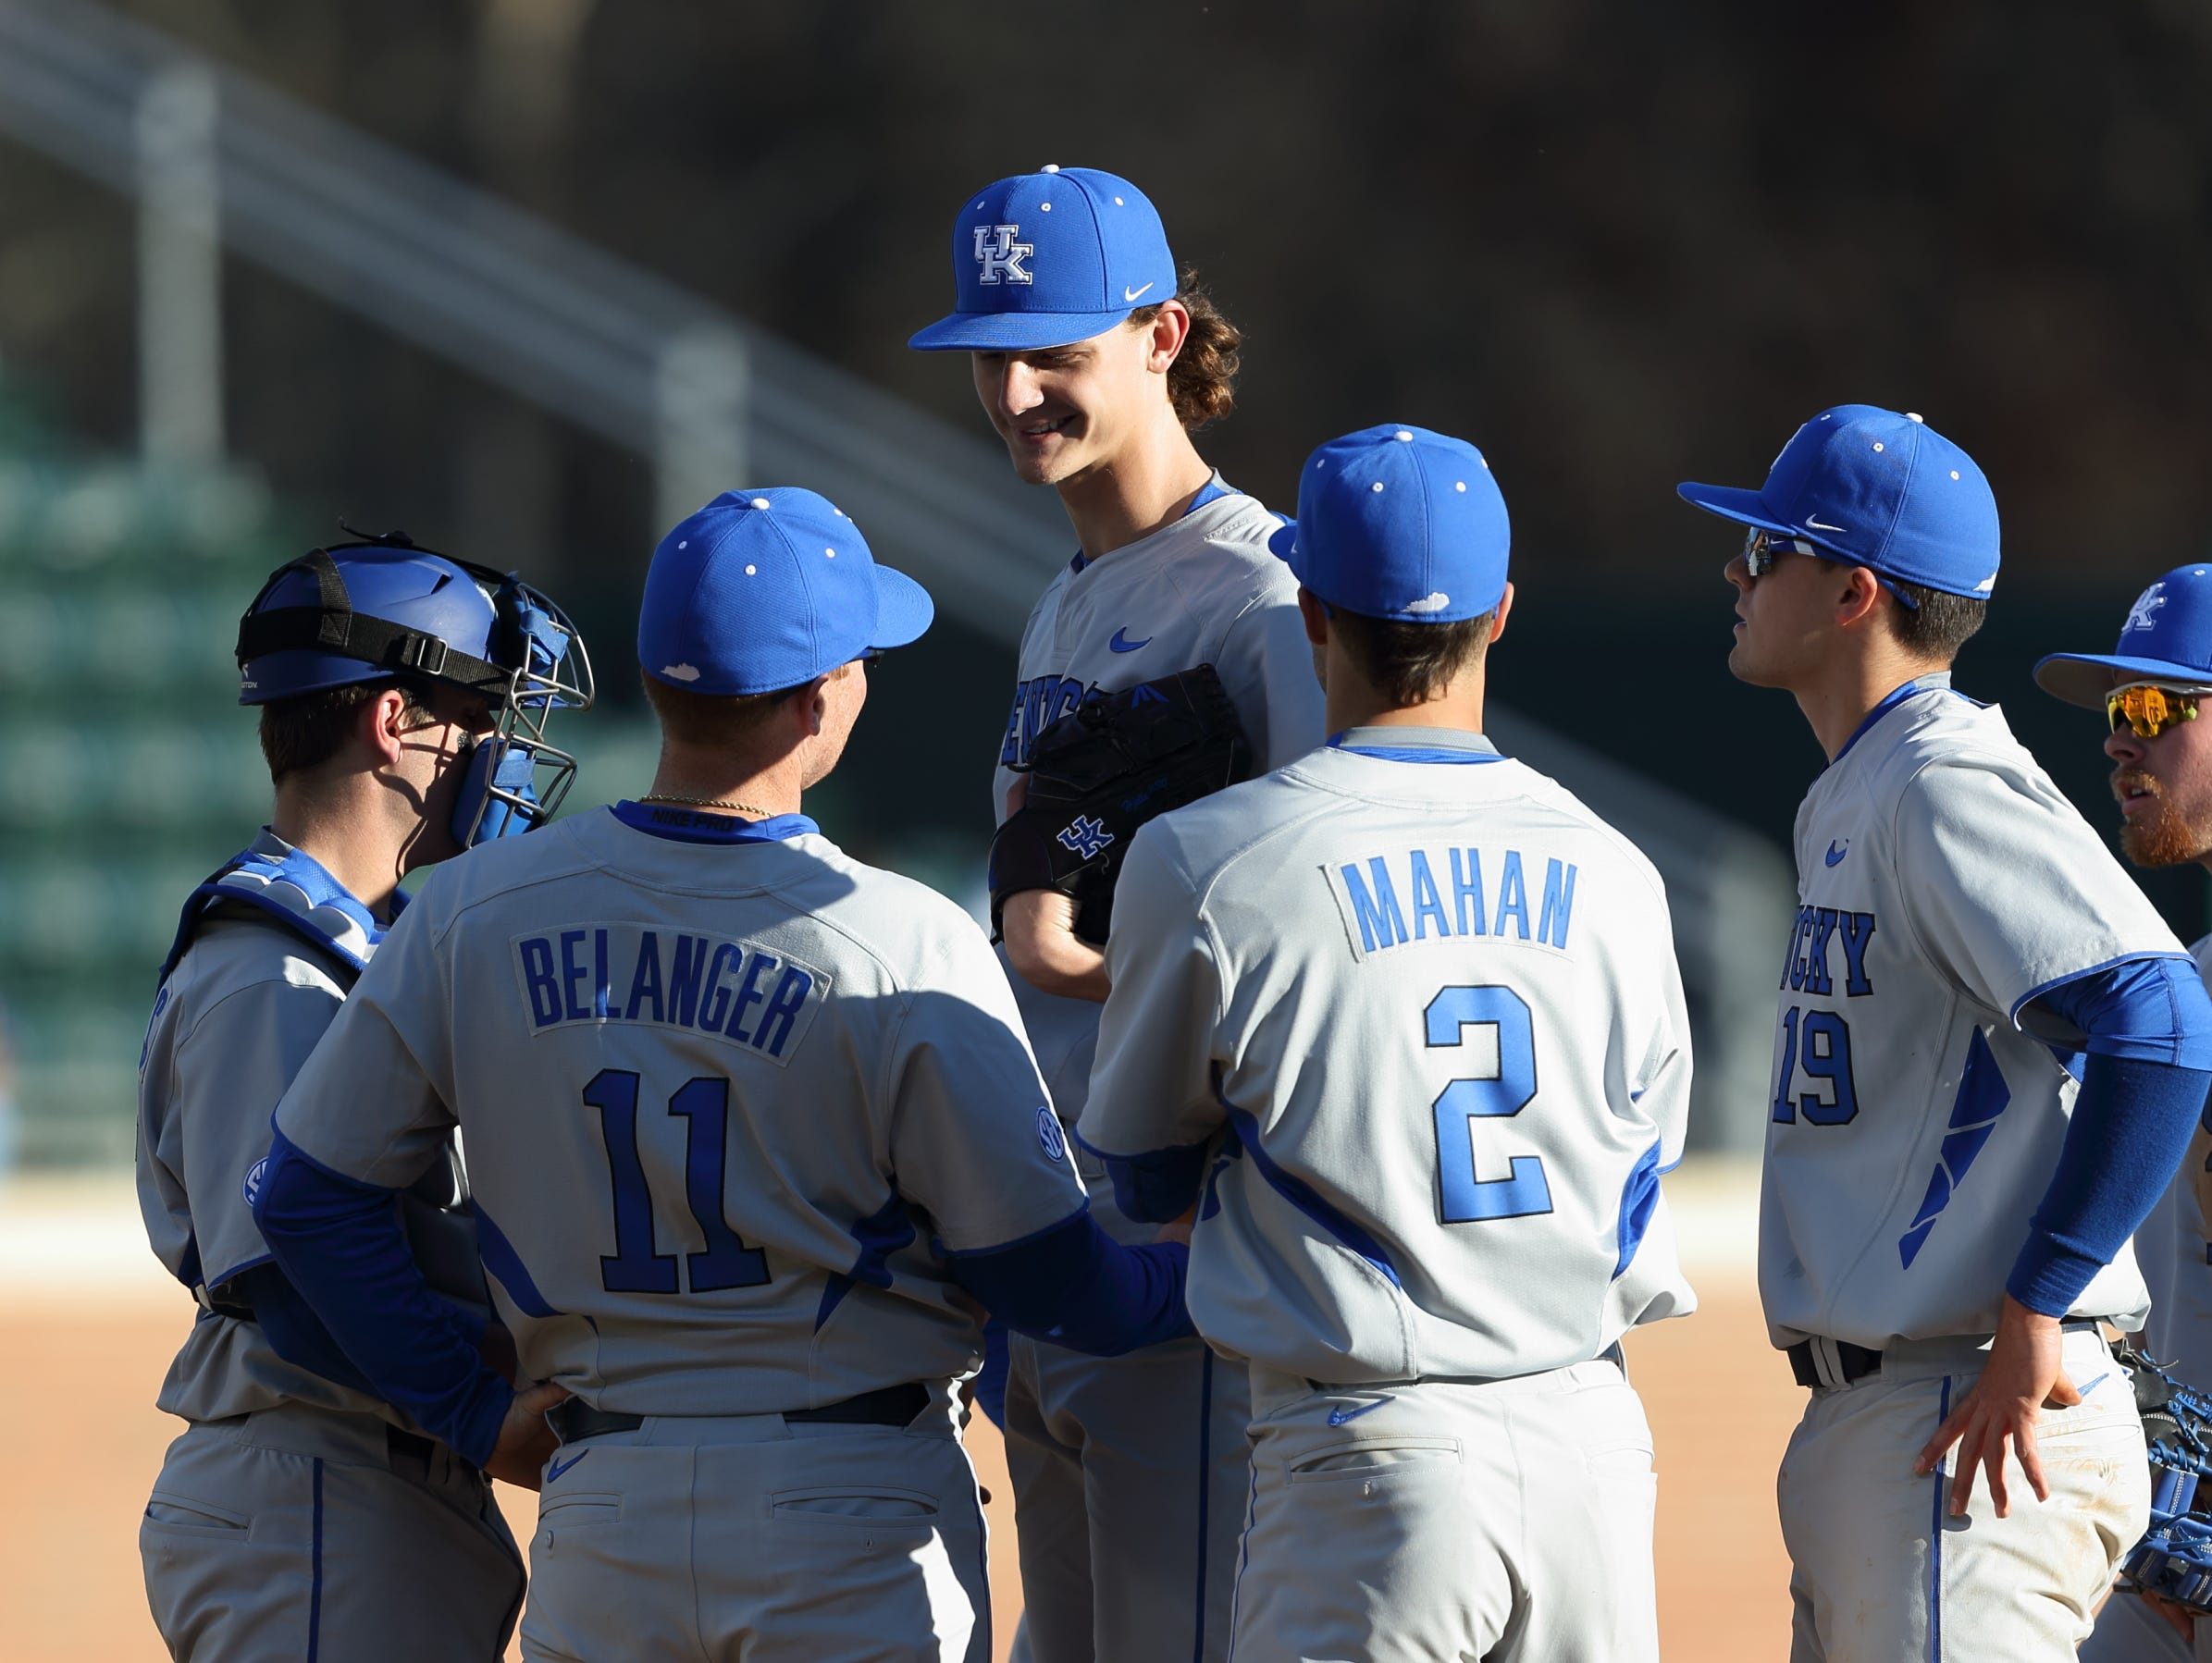 UK pitching coach Jim Belanger meets with starter Sean Hjelle and the Wildcats infield during a mound visit.